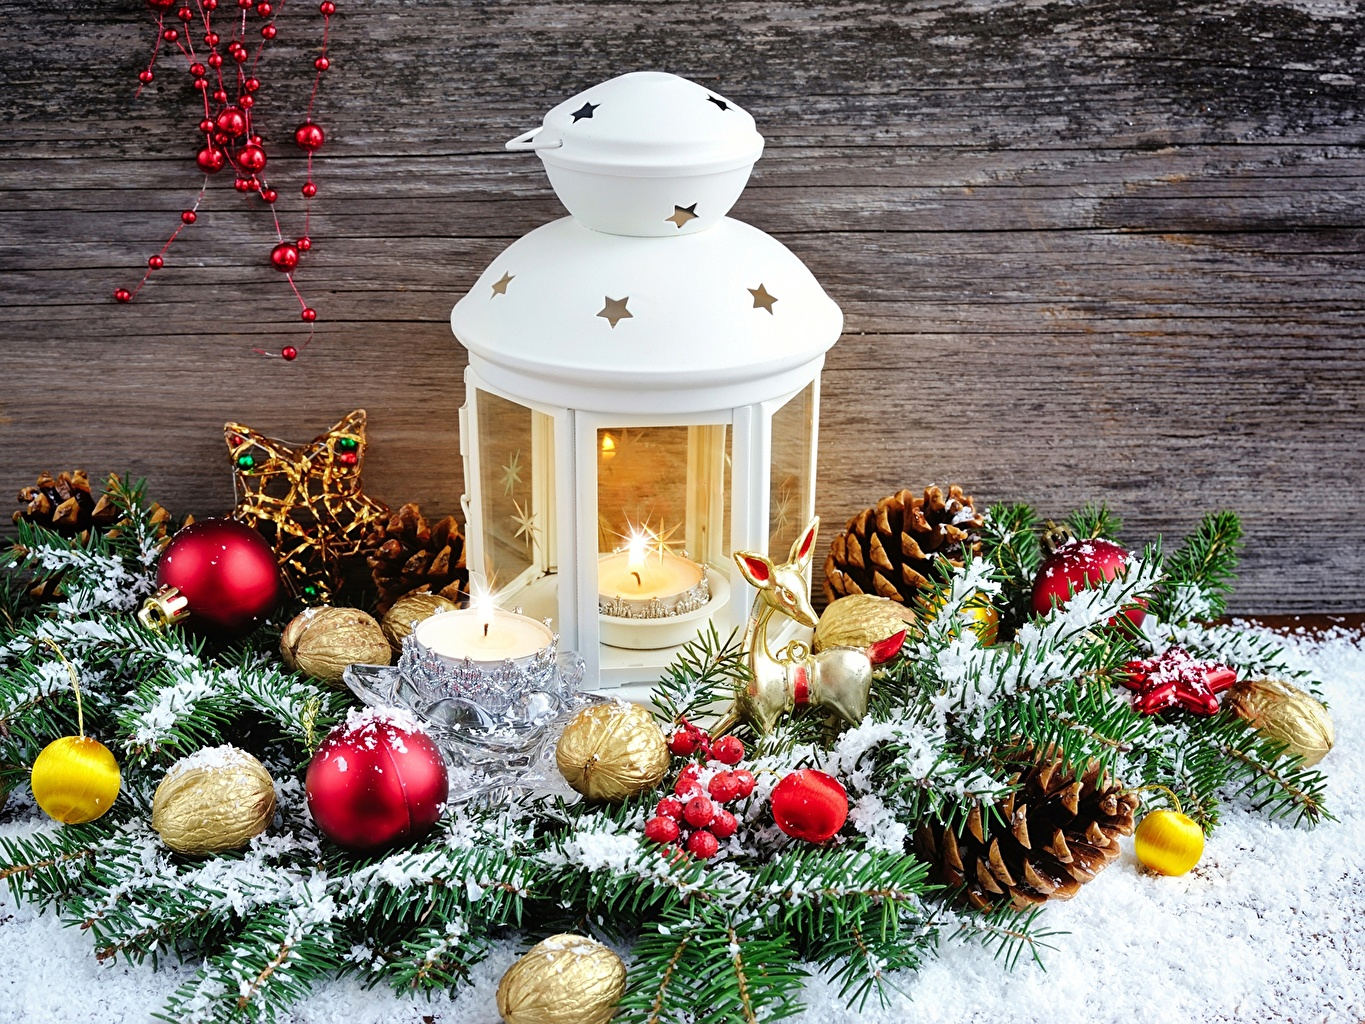 Photos Christmas Lantern Balls Candles Pine cone Nuts Holidays New year Conifer cone